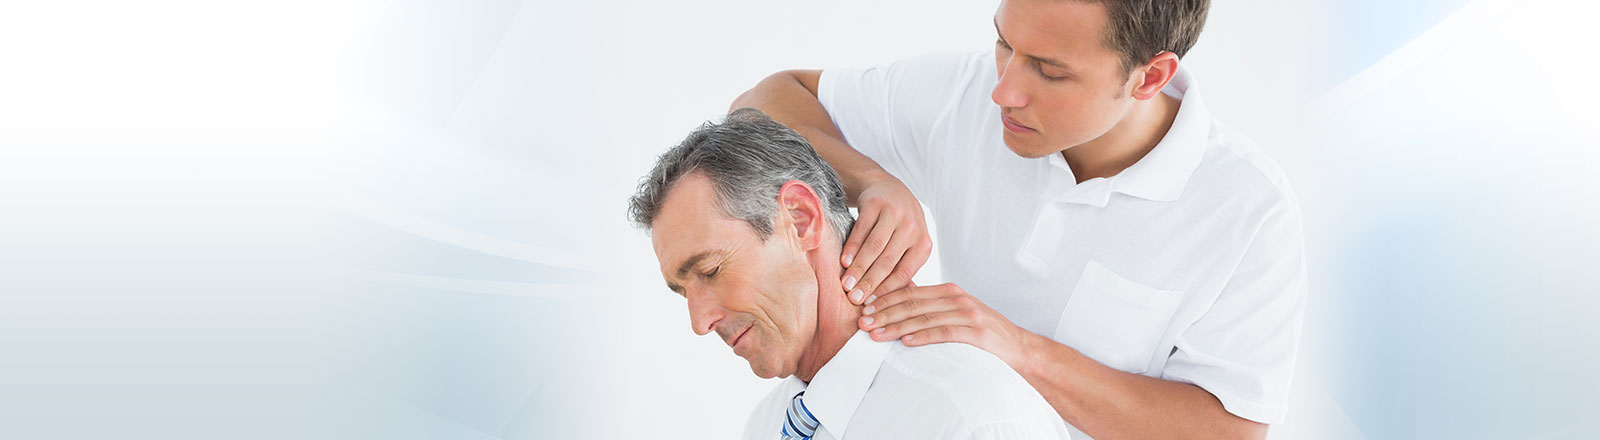 Chiropractic Neck Adjustmentas at Absolute Health Clinic - Chiropractor in Arlington Heights